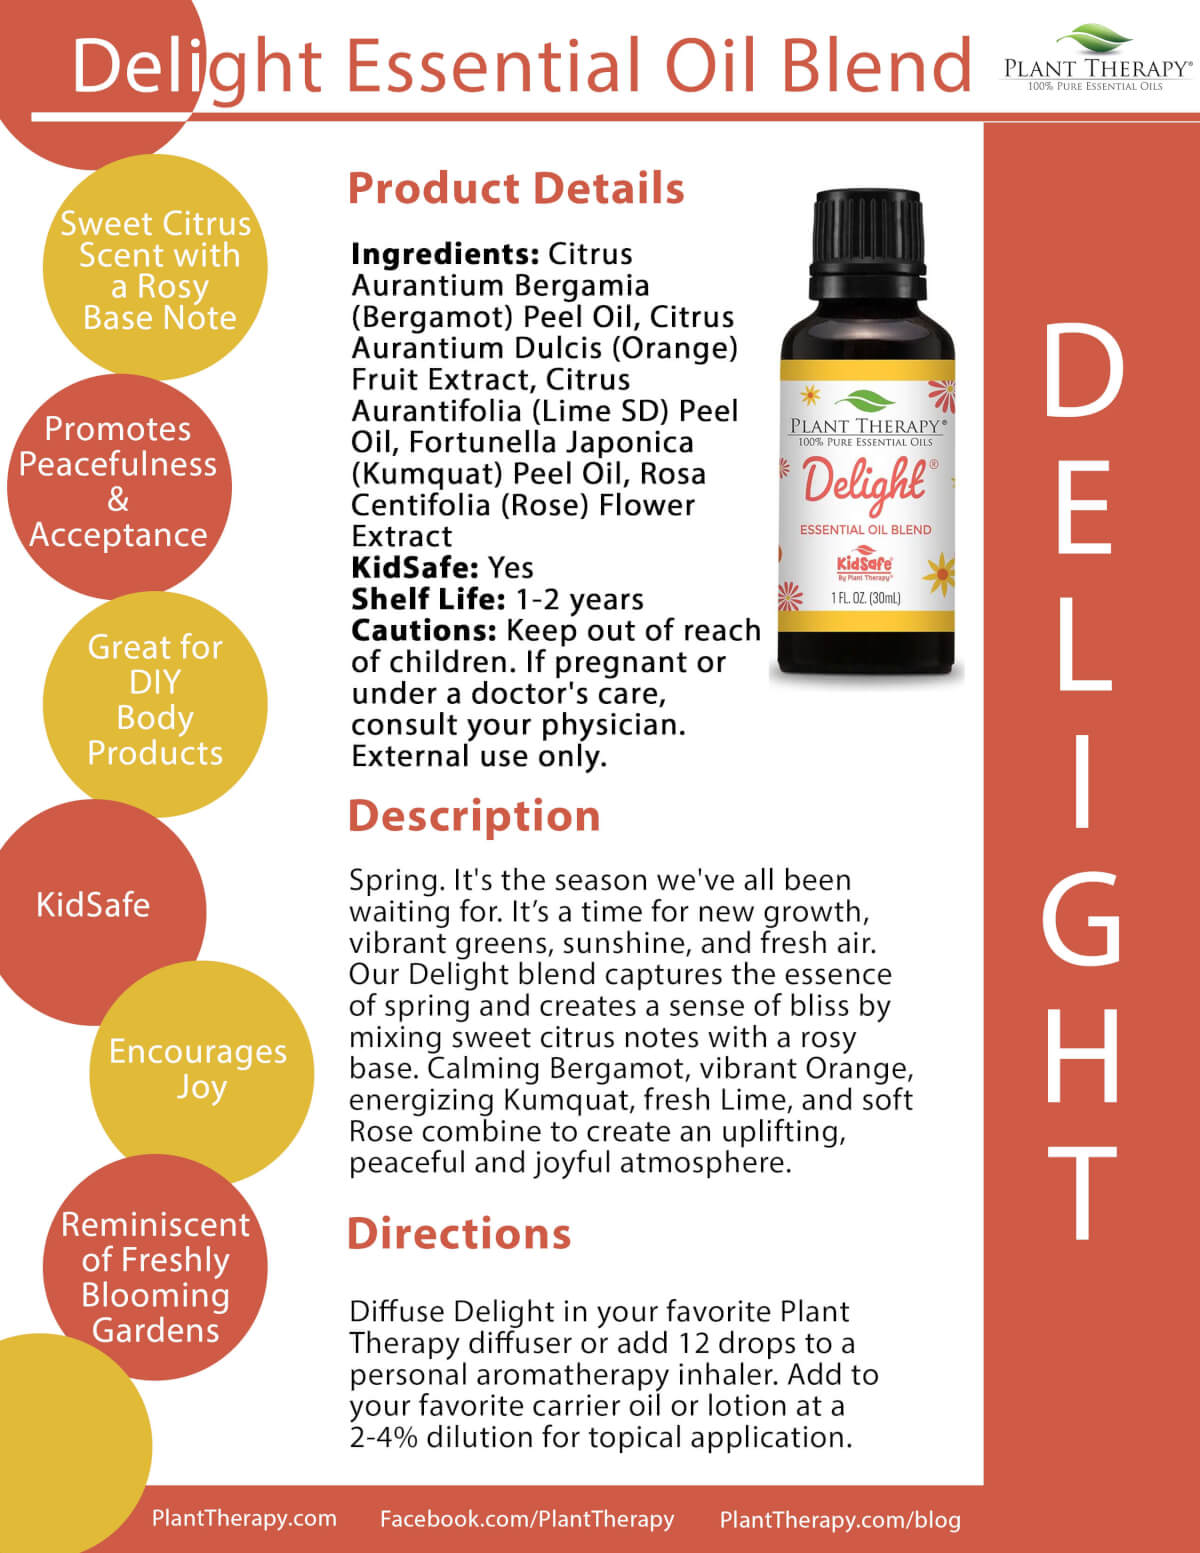 Delight Essential Oil Blend product sheet from Plant Therapy